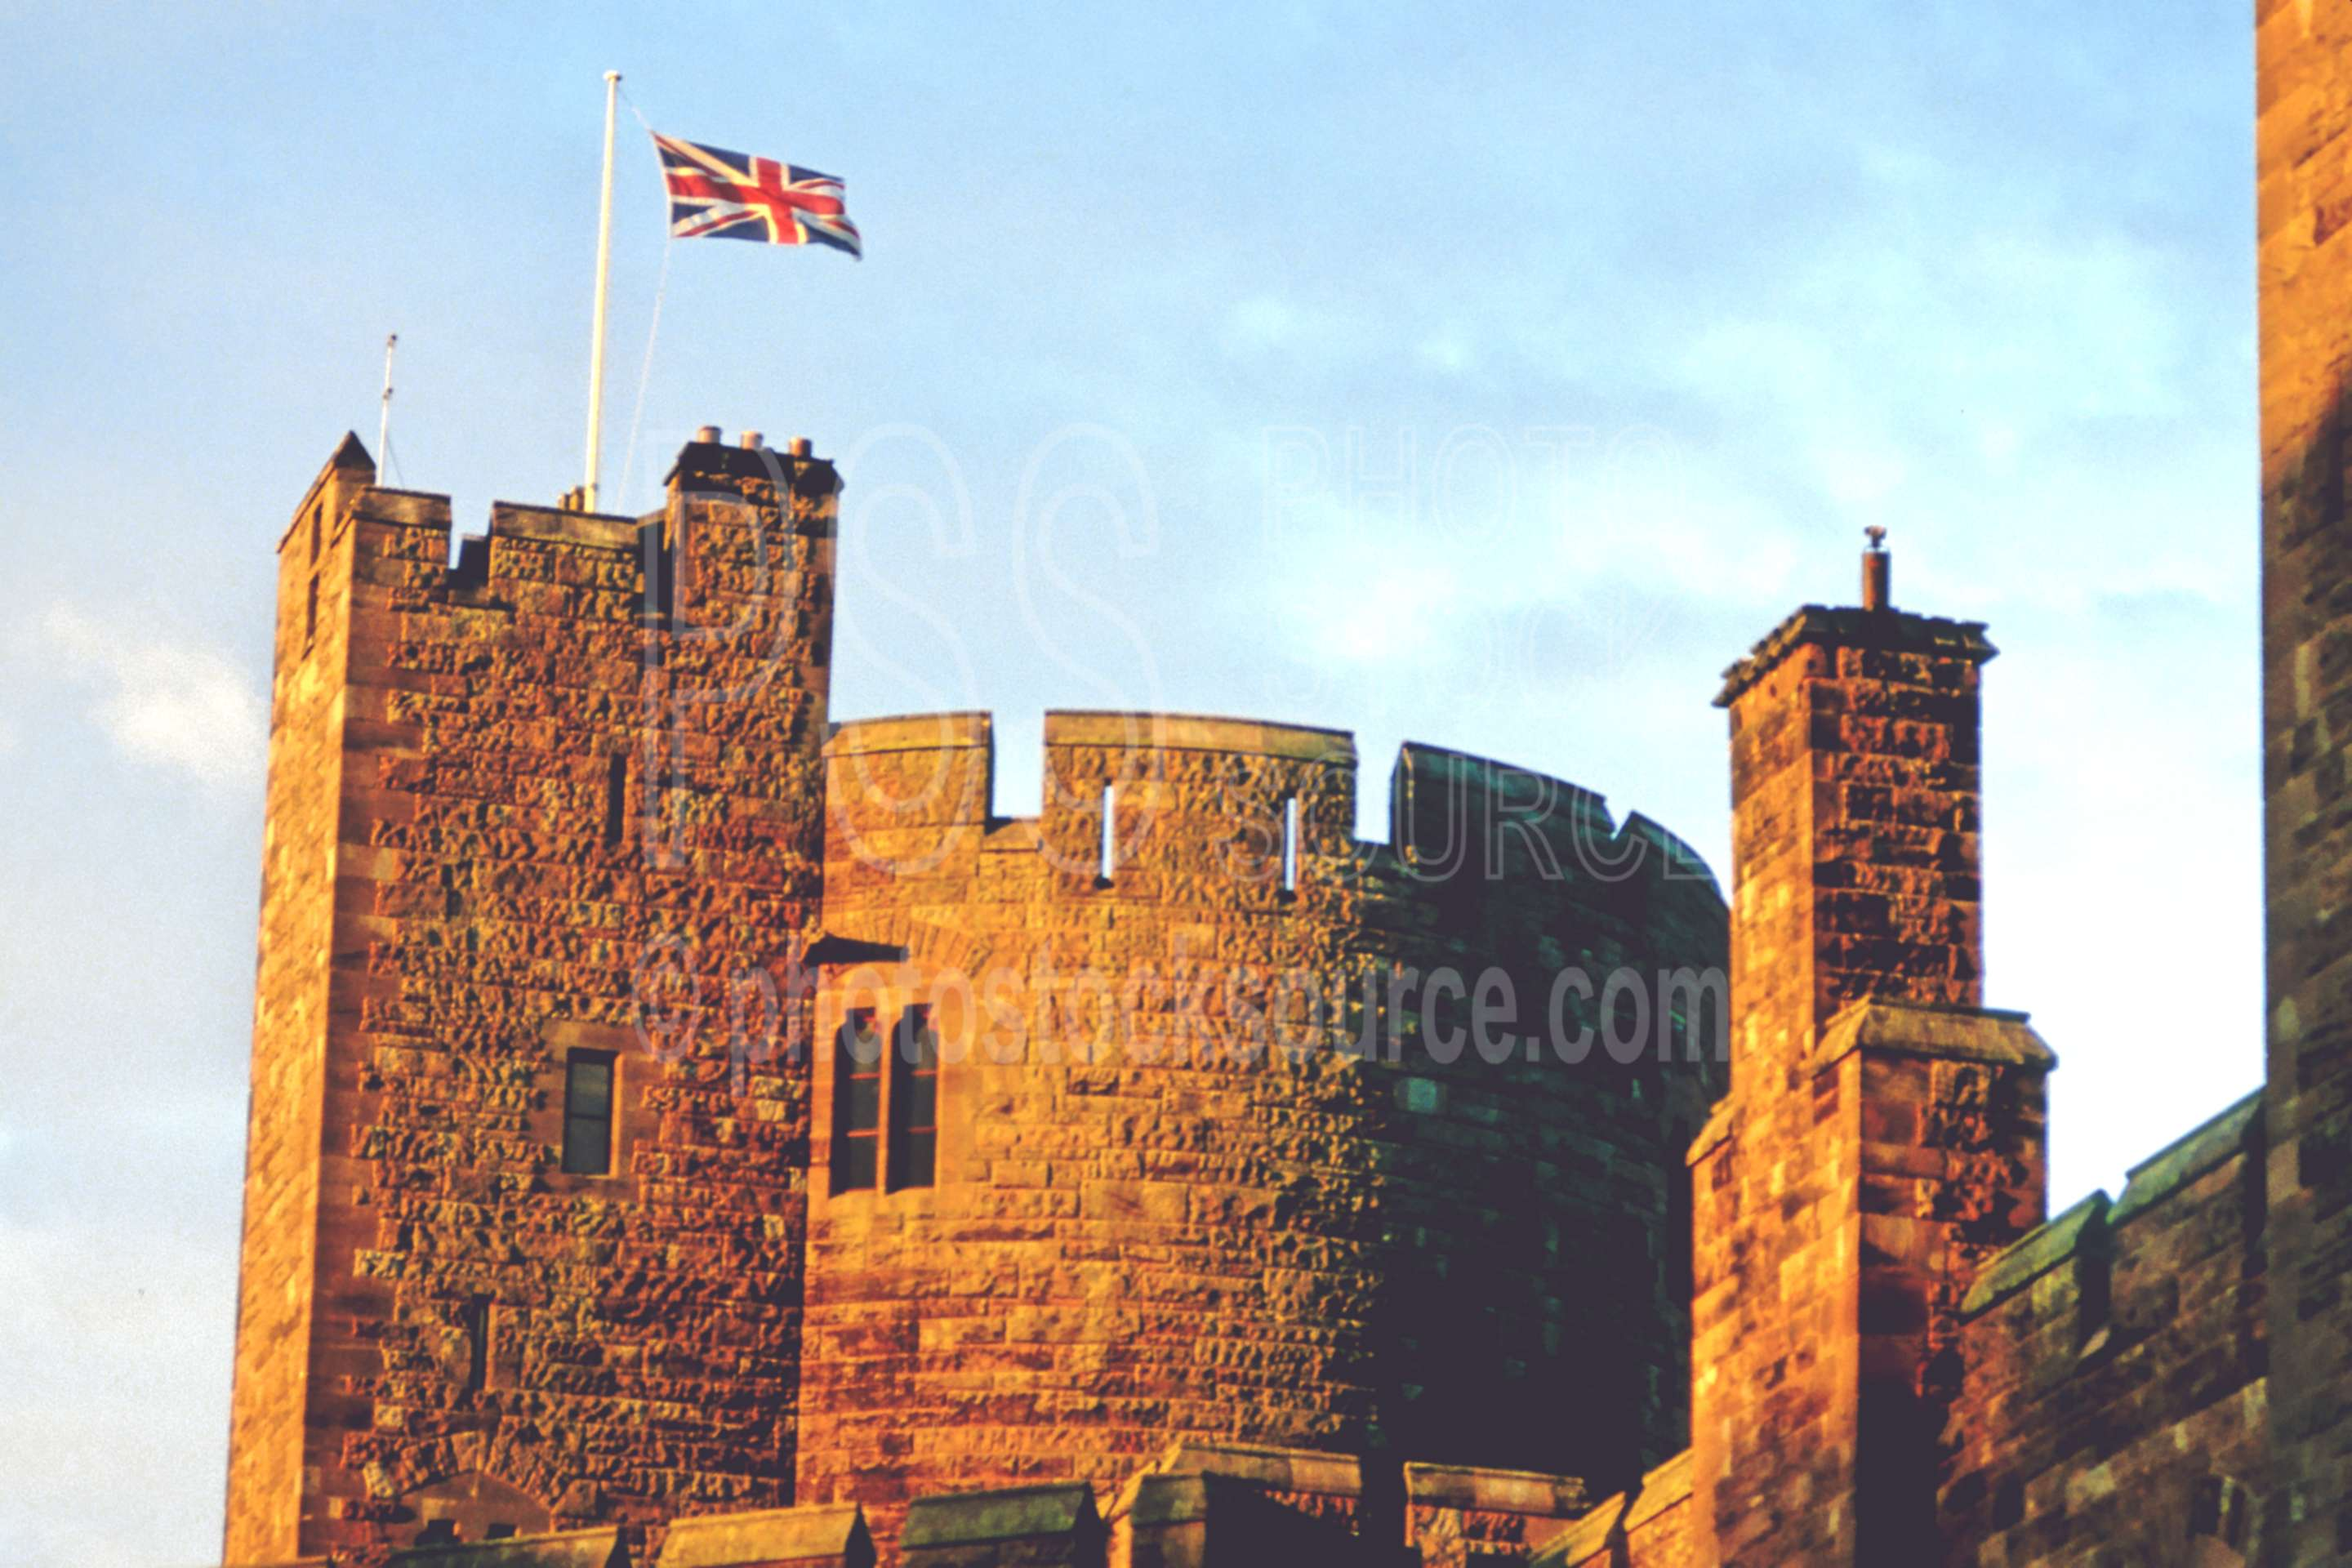 Peckforton Castle,castle,europe,peckforton,architecture,castles